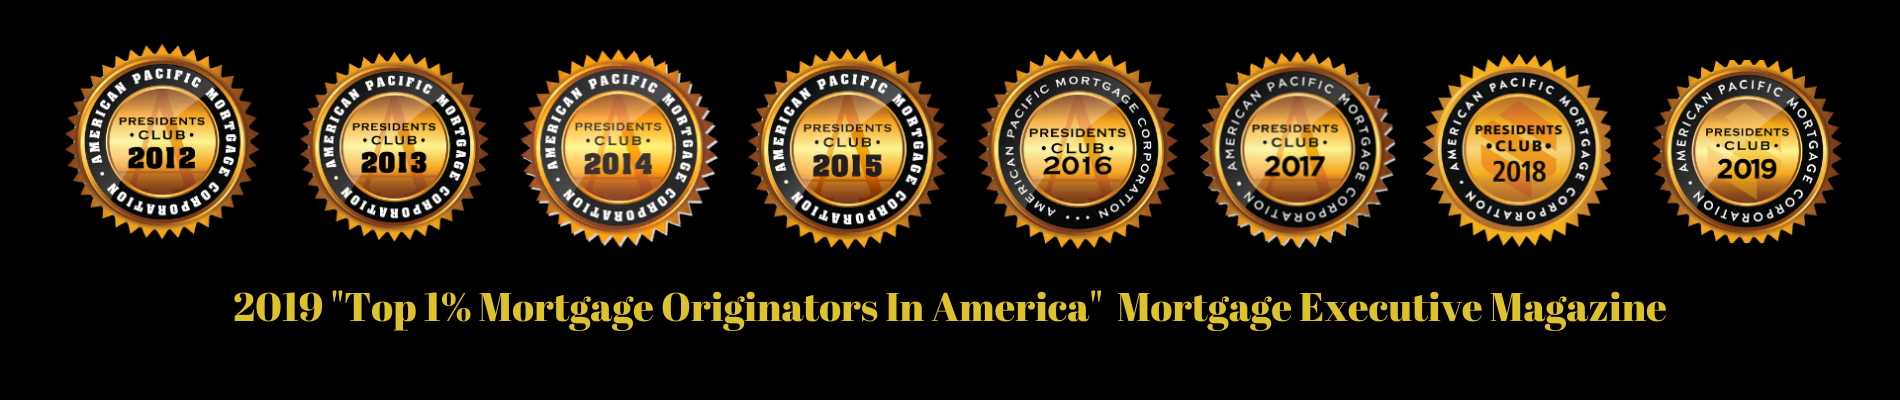 Top Mortgage Loan Originator Accolades